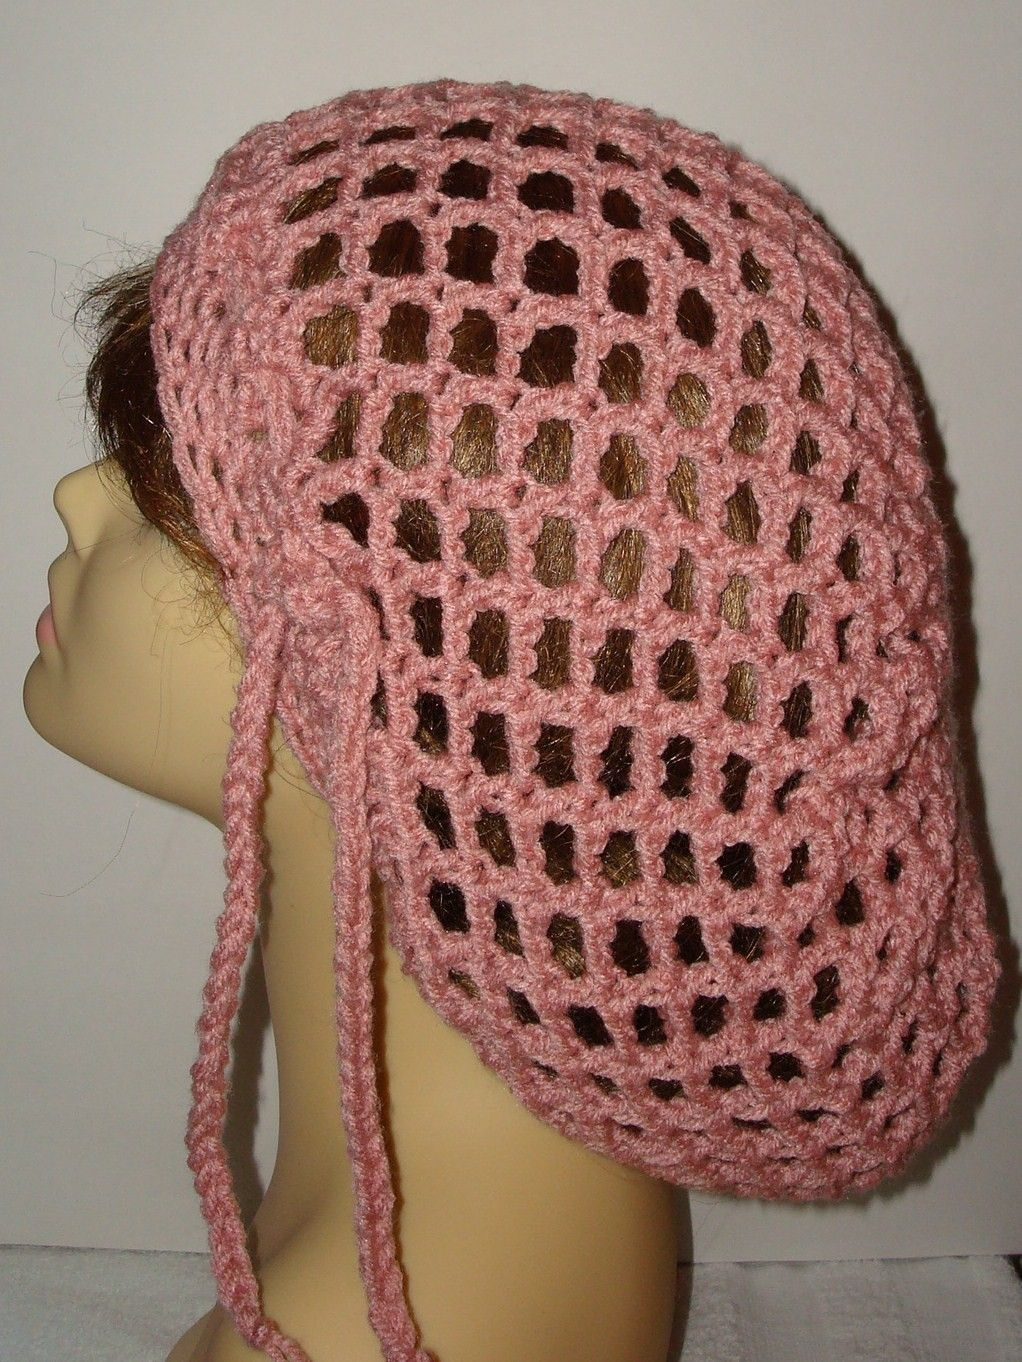 KNITTING PATTERN RASTA HAT - FREE PATTERNS | Your Pinterest Likes ...